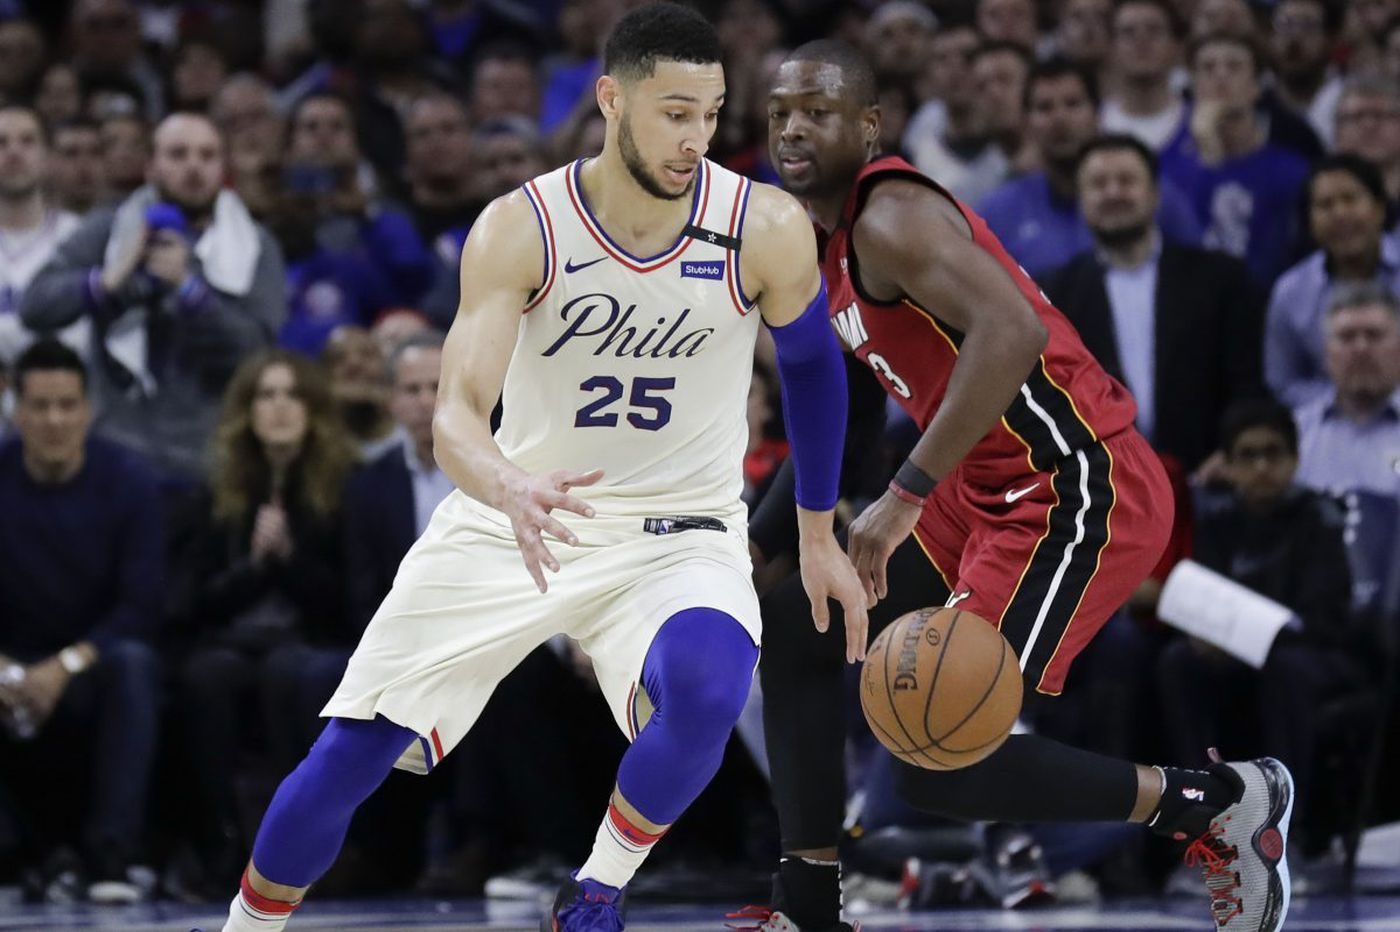 Heat guard Dwyane Wade always knew Sixers' Ben Simmons would be special